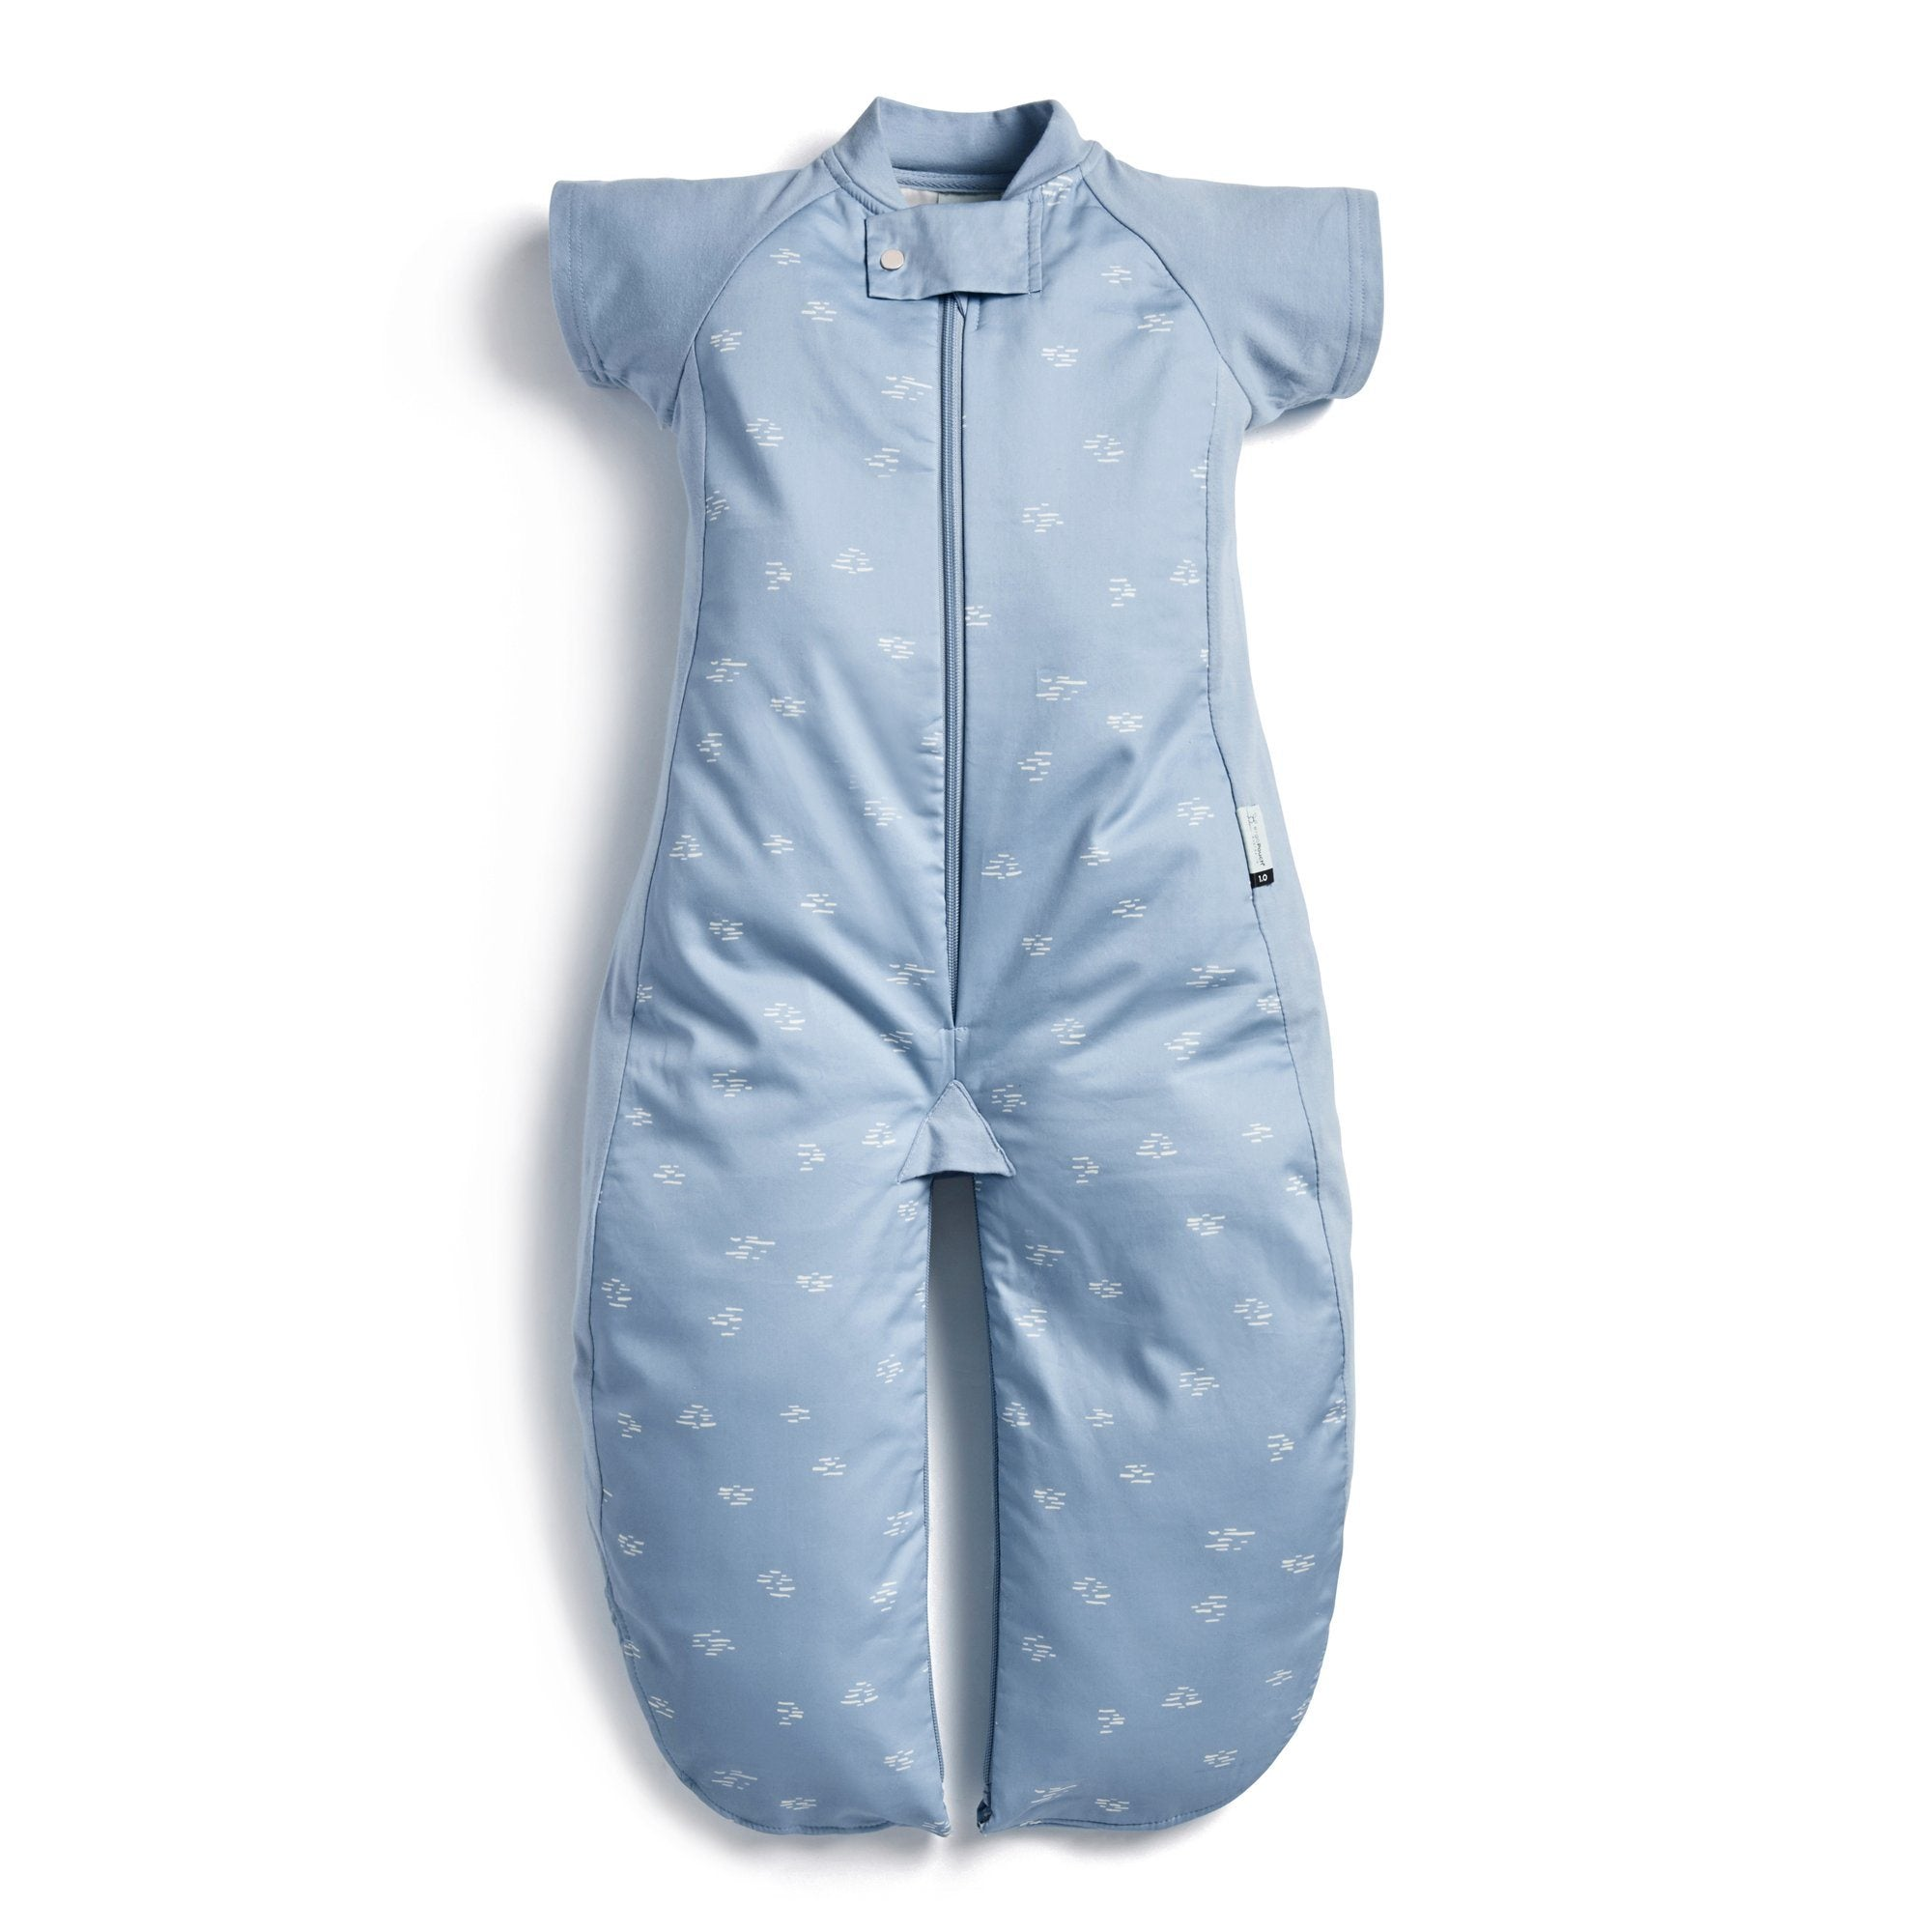 Sleep Suit Bag 1.0 tog (Ripple)